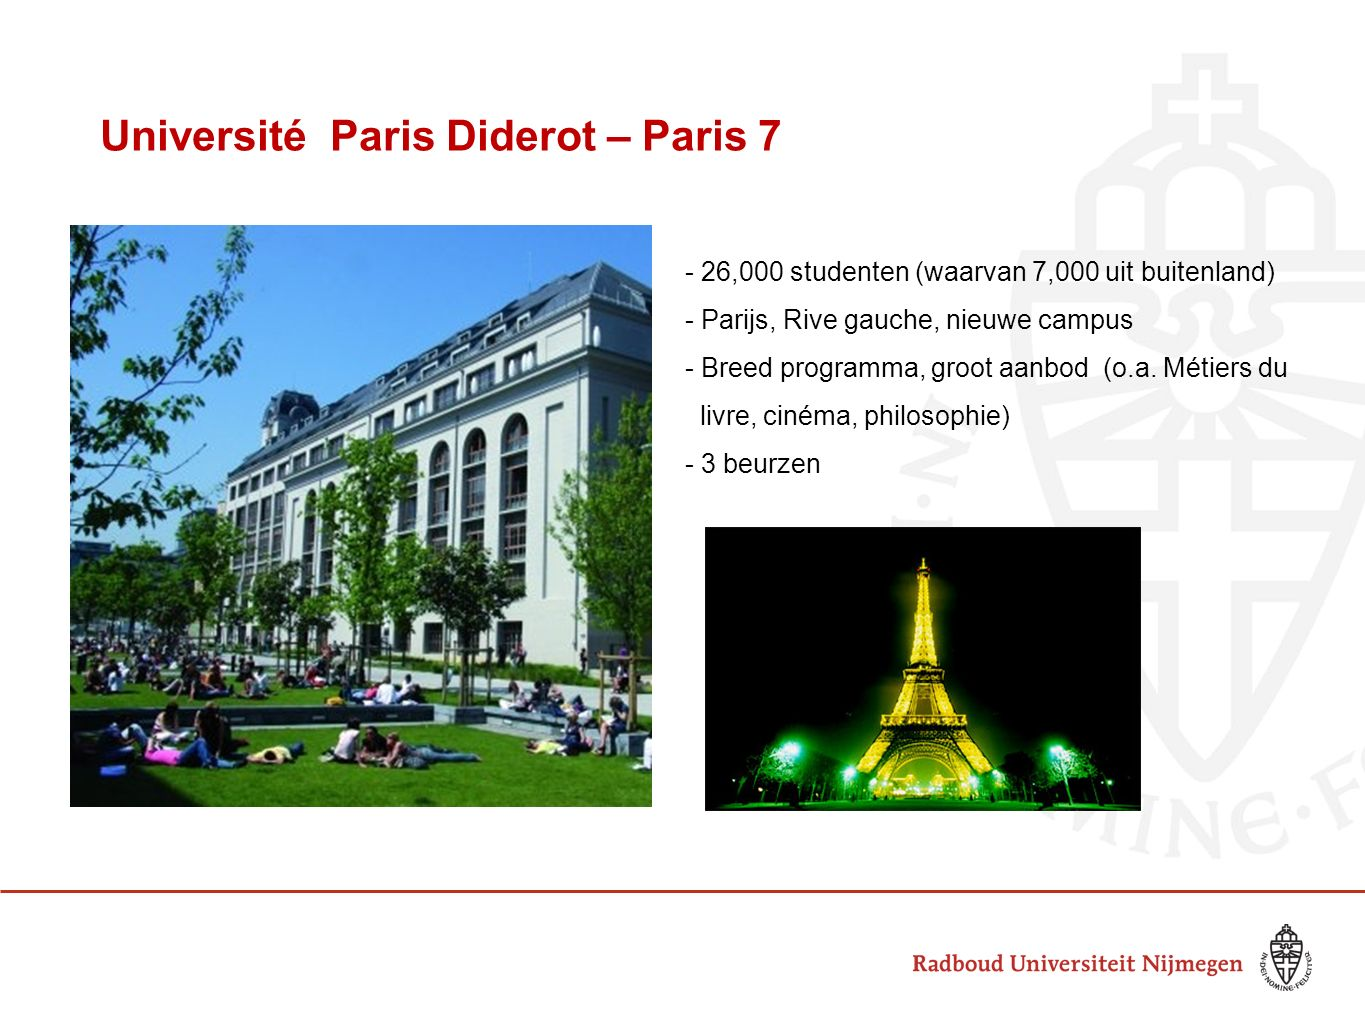 Université Paris Diderot – Paris 7